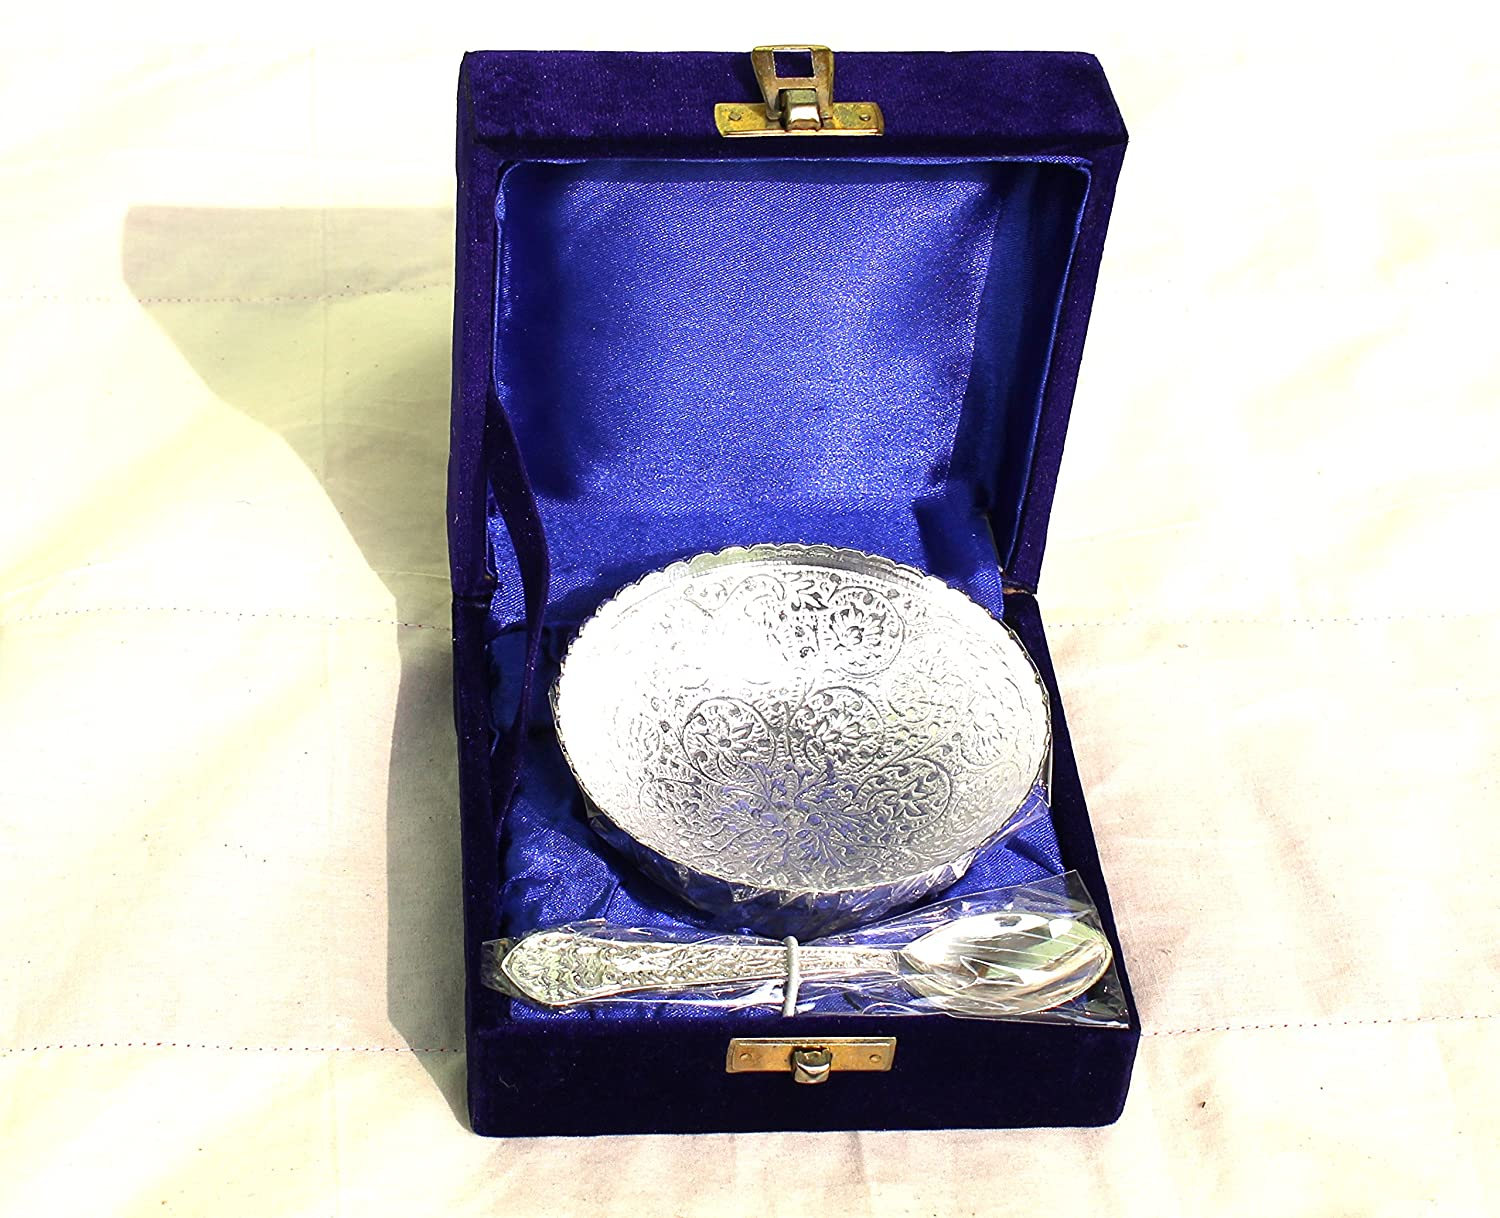 MAITHIL ART Royal Engraving Design with Decorative Gifting Box,Bowl Platter Tray with Spoon Silver Plated Brass (Round Shape Bowel Silver Coated)